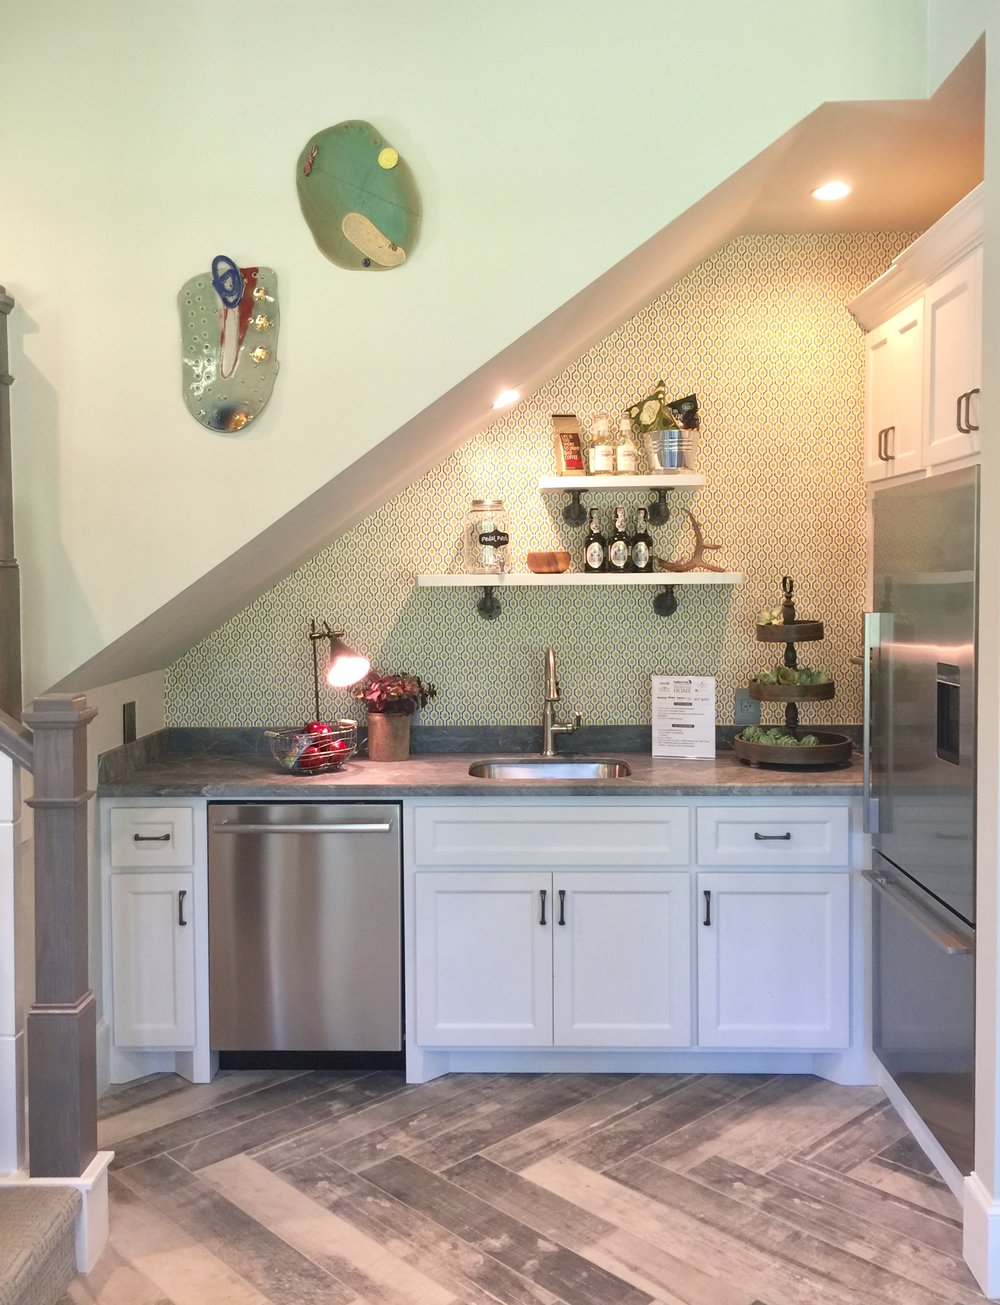 Guest House Kitchen under the stairs - Southern Living Showcase Home